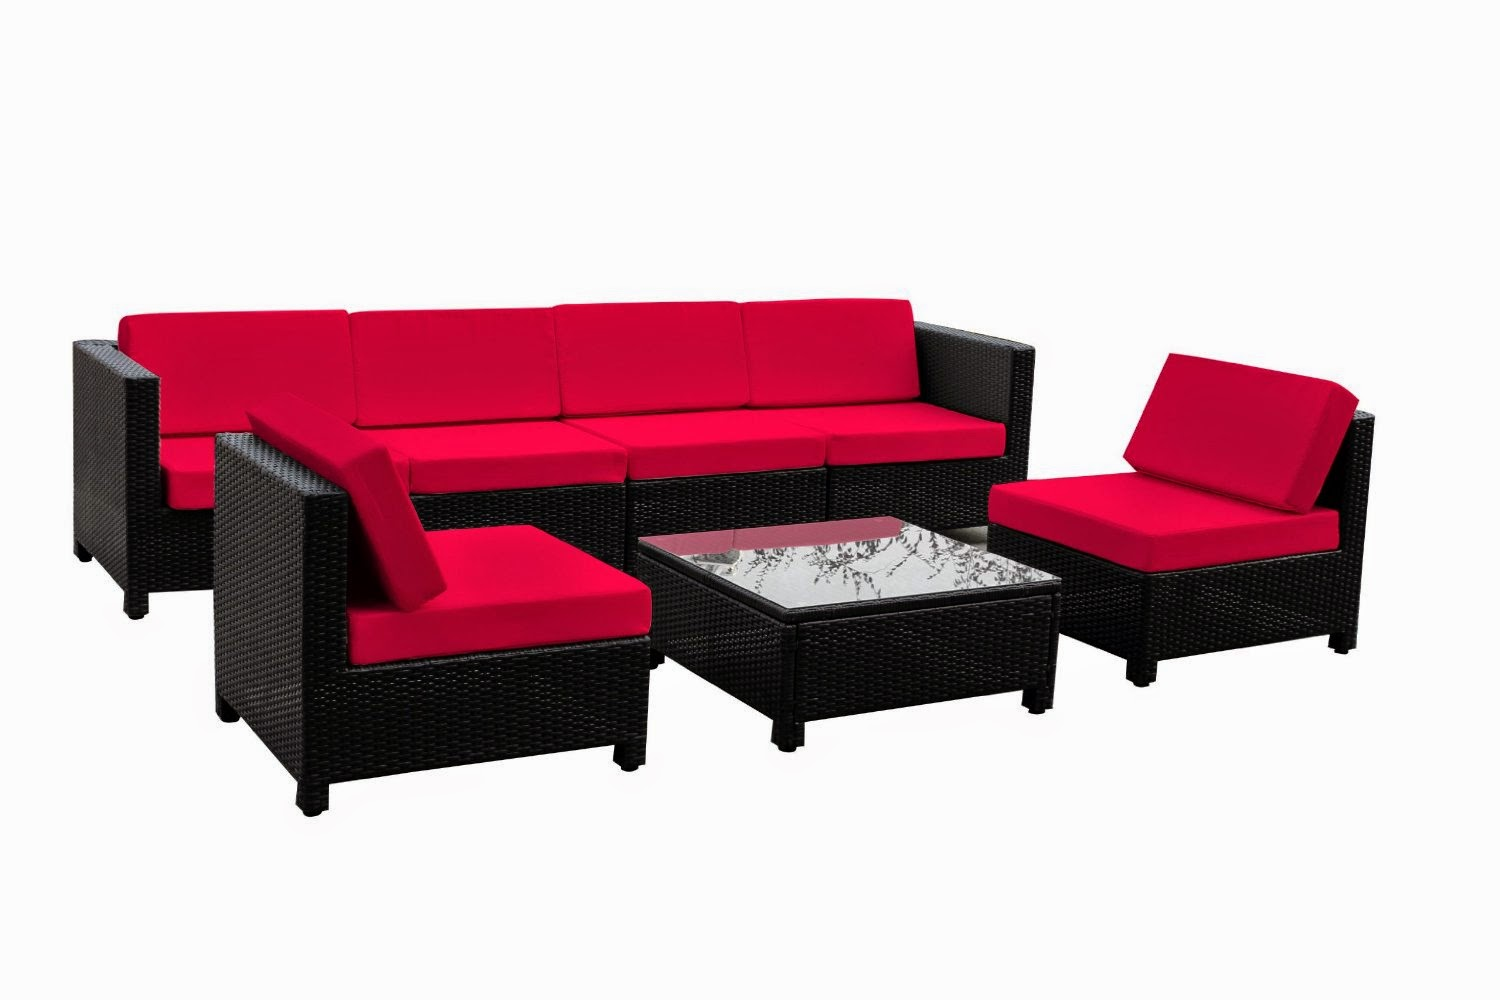 outdoor sofa furniture simply shabby chic slipcovers special price discount 66 7 pcs luxury wicker patio